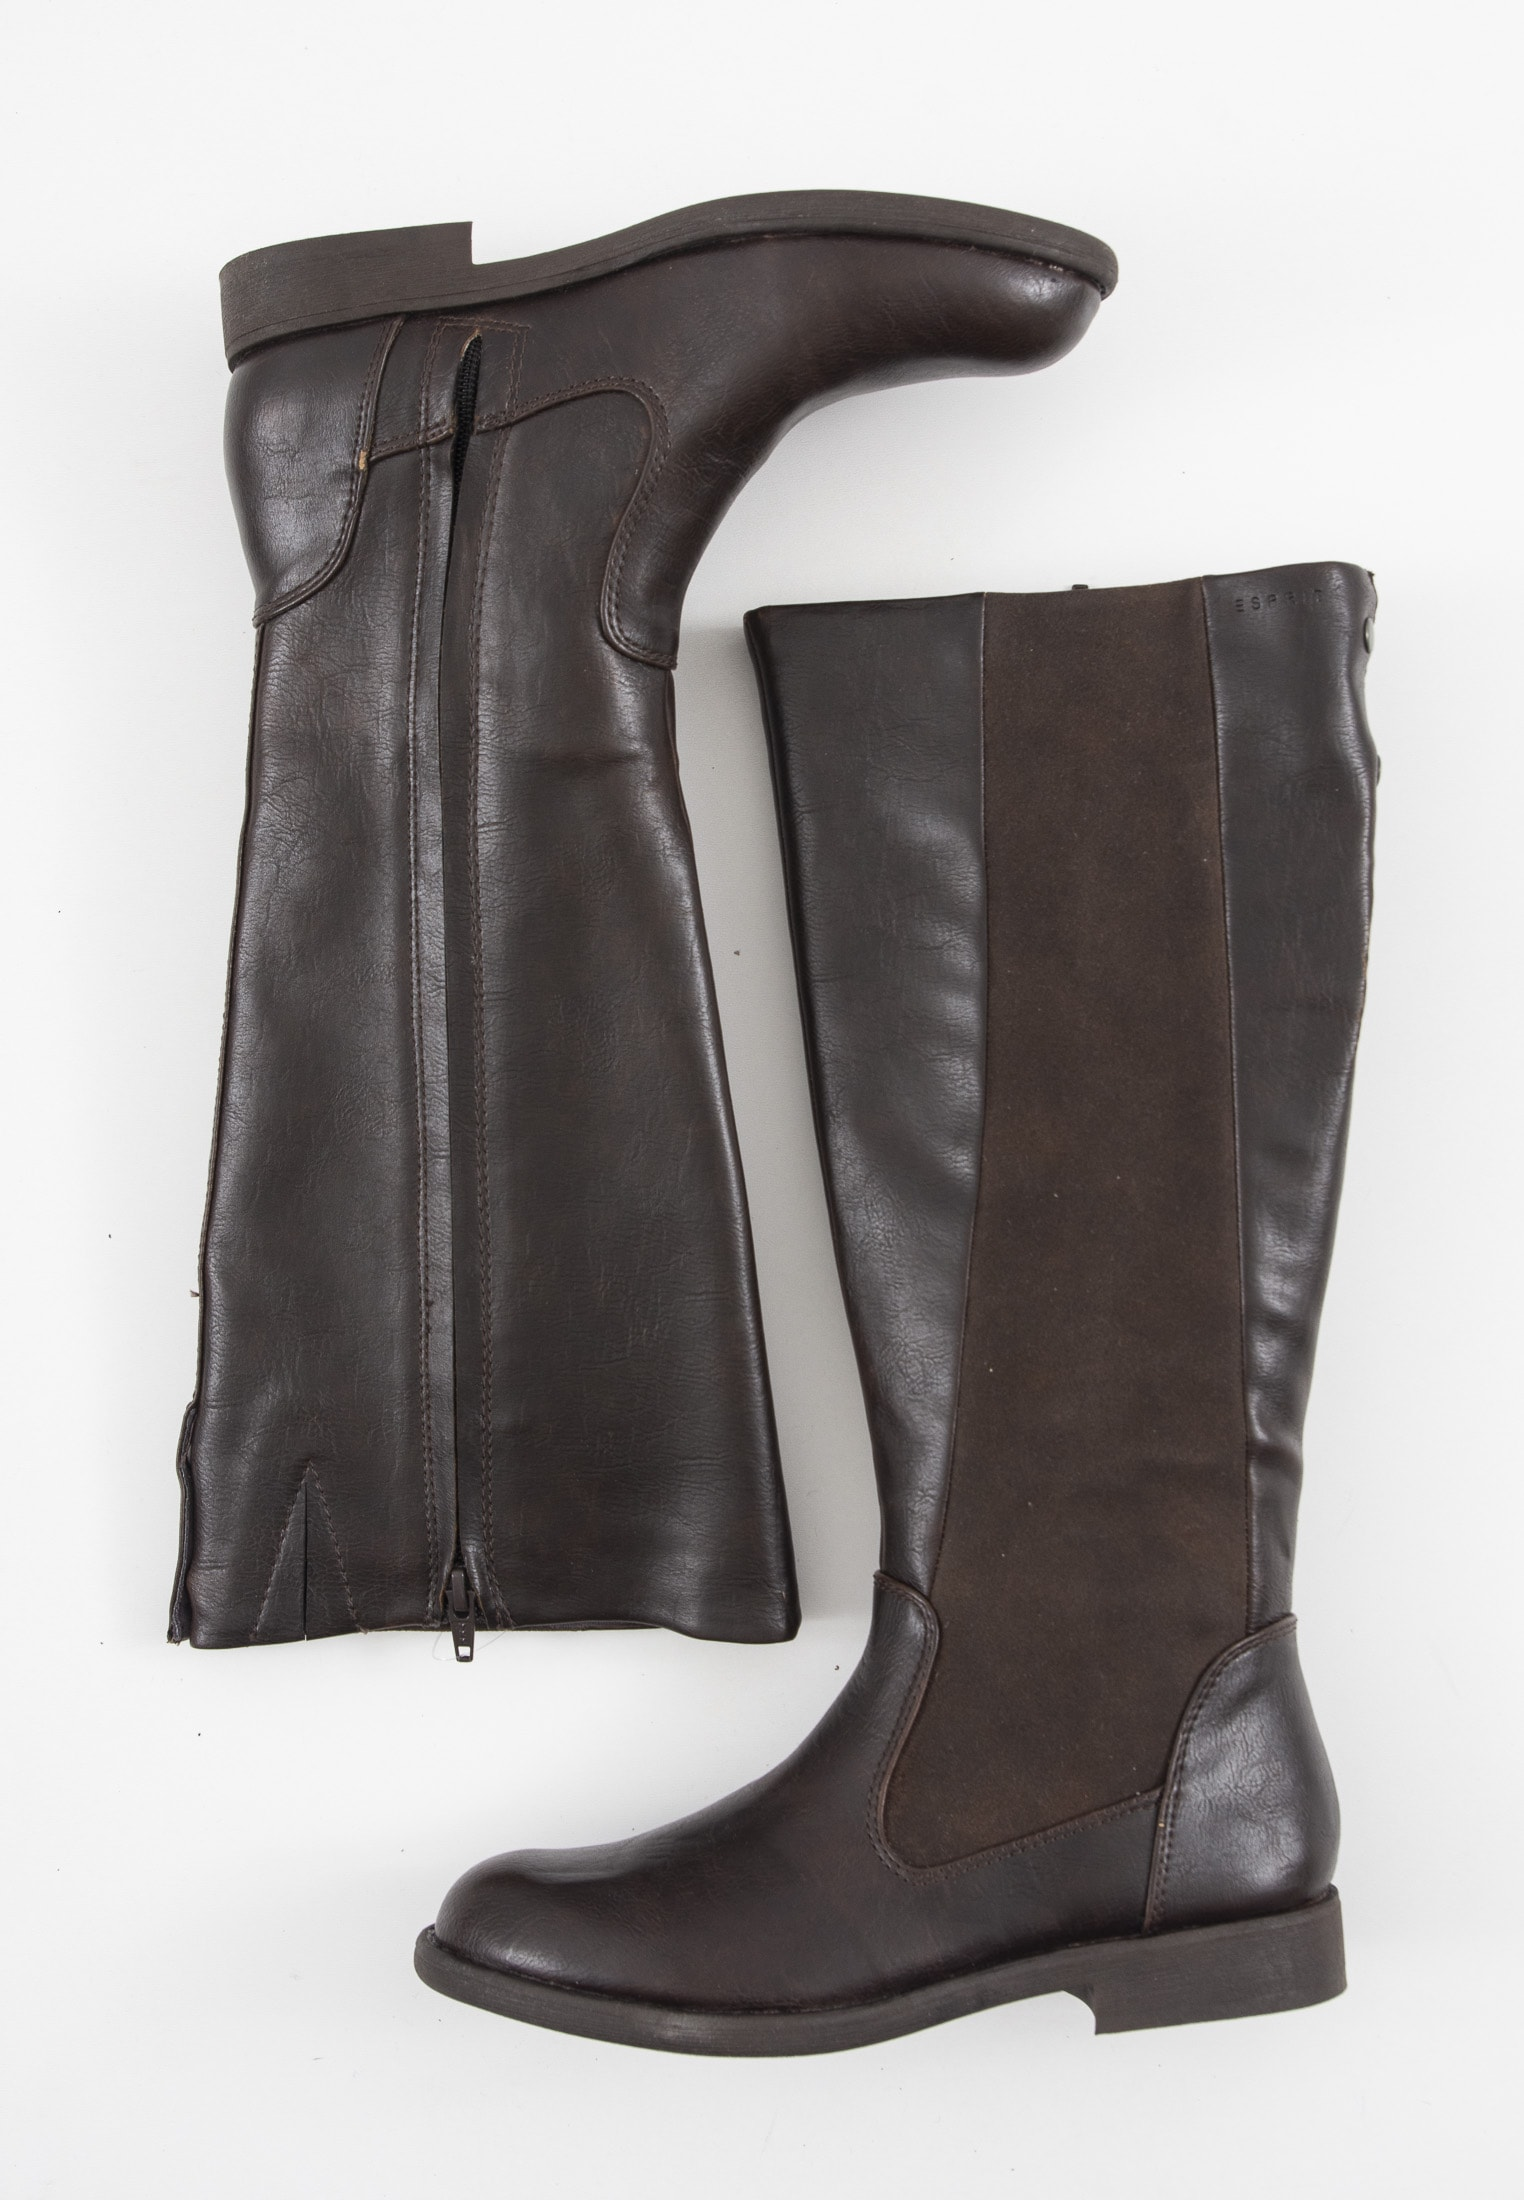 Esprit Collection Stiefel / Stiefelette / Boots Braun Gr.37